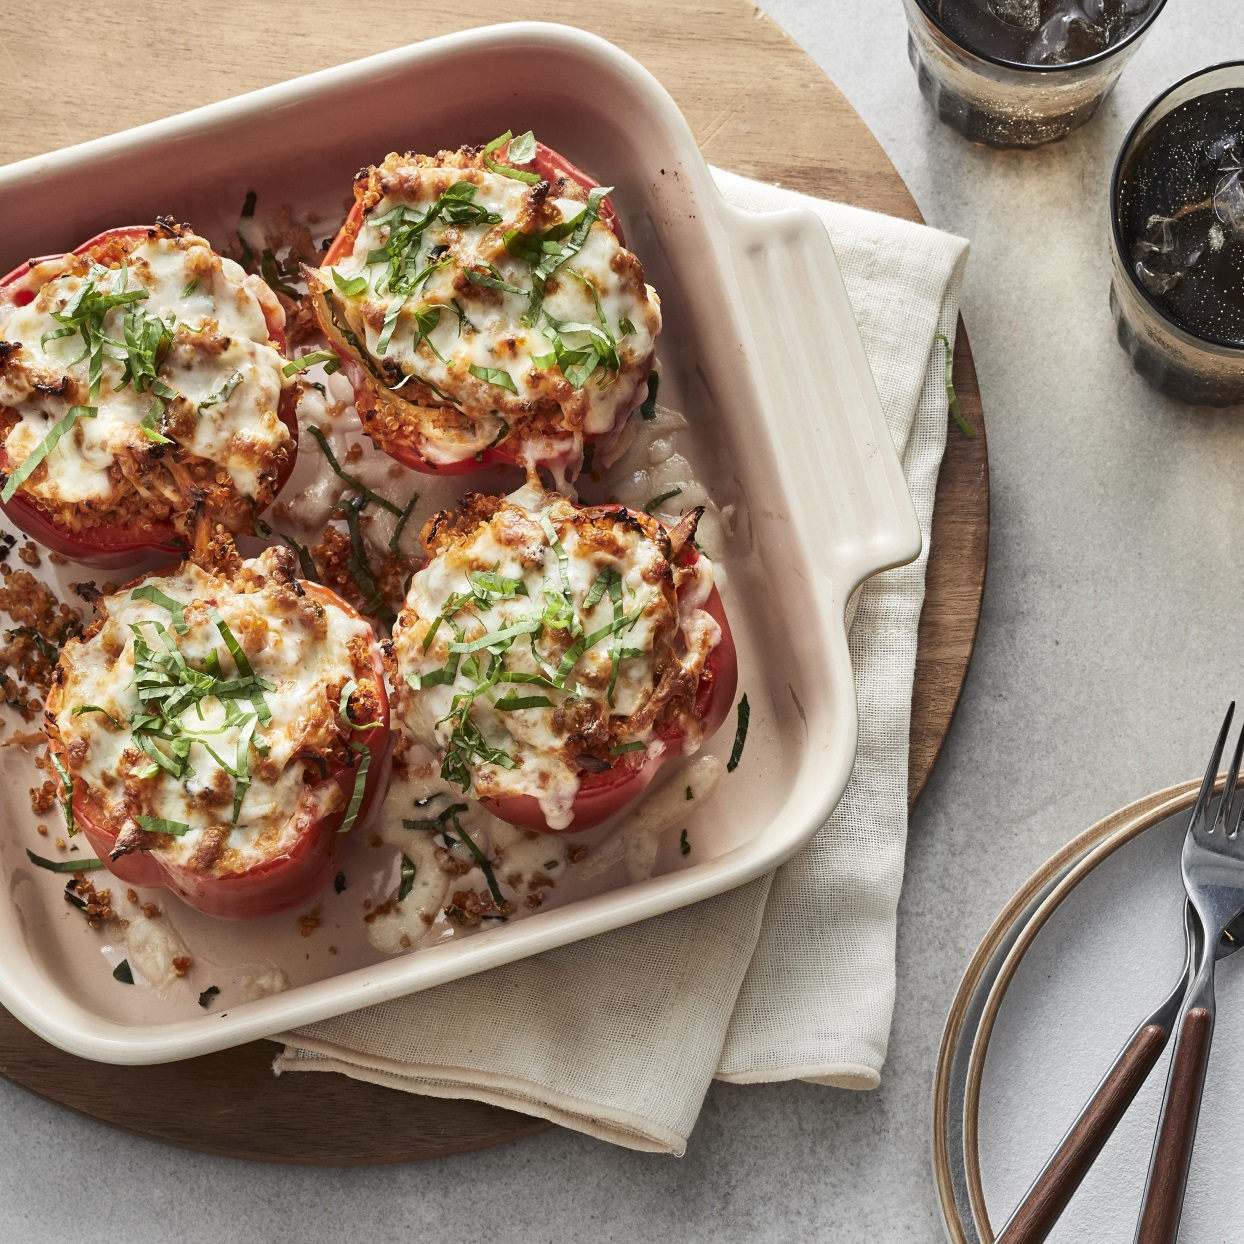 Chicken Parm gets a fun low-carb and gluten-free twist with these cheesy stuffed peppers with chicken and quinoa. Serve with a salad for a healthy dinner that's easy to prep too.